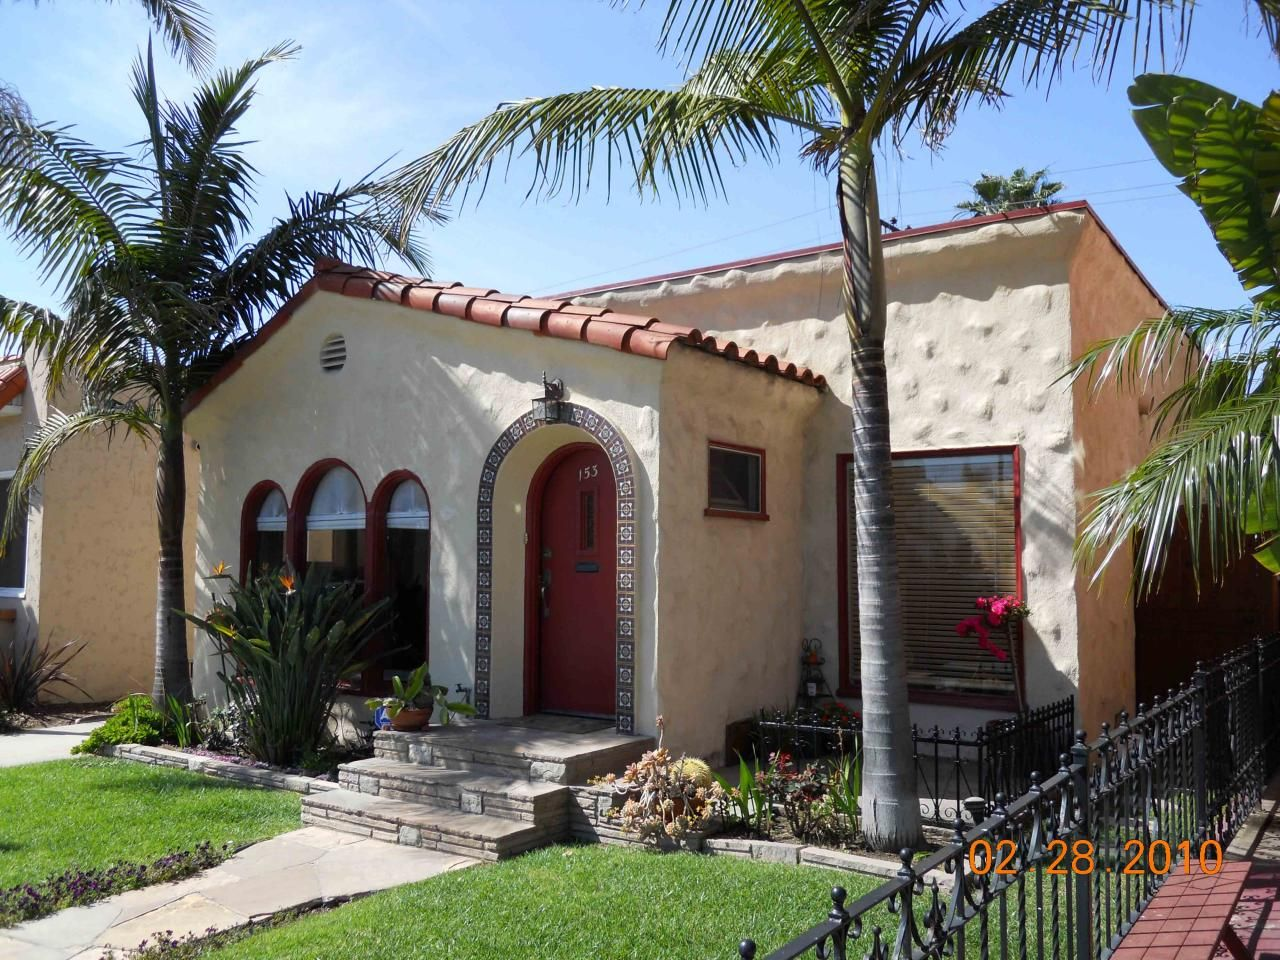 Spanish Bungalow Garden In Front Amp Side Yard Spanish Bungalow Spanish Revival Home Spanish